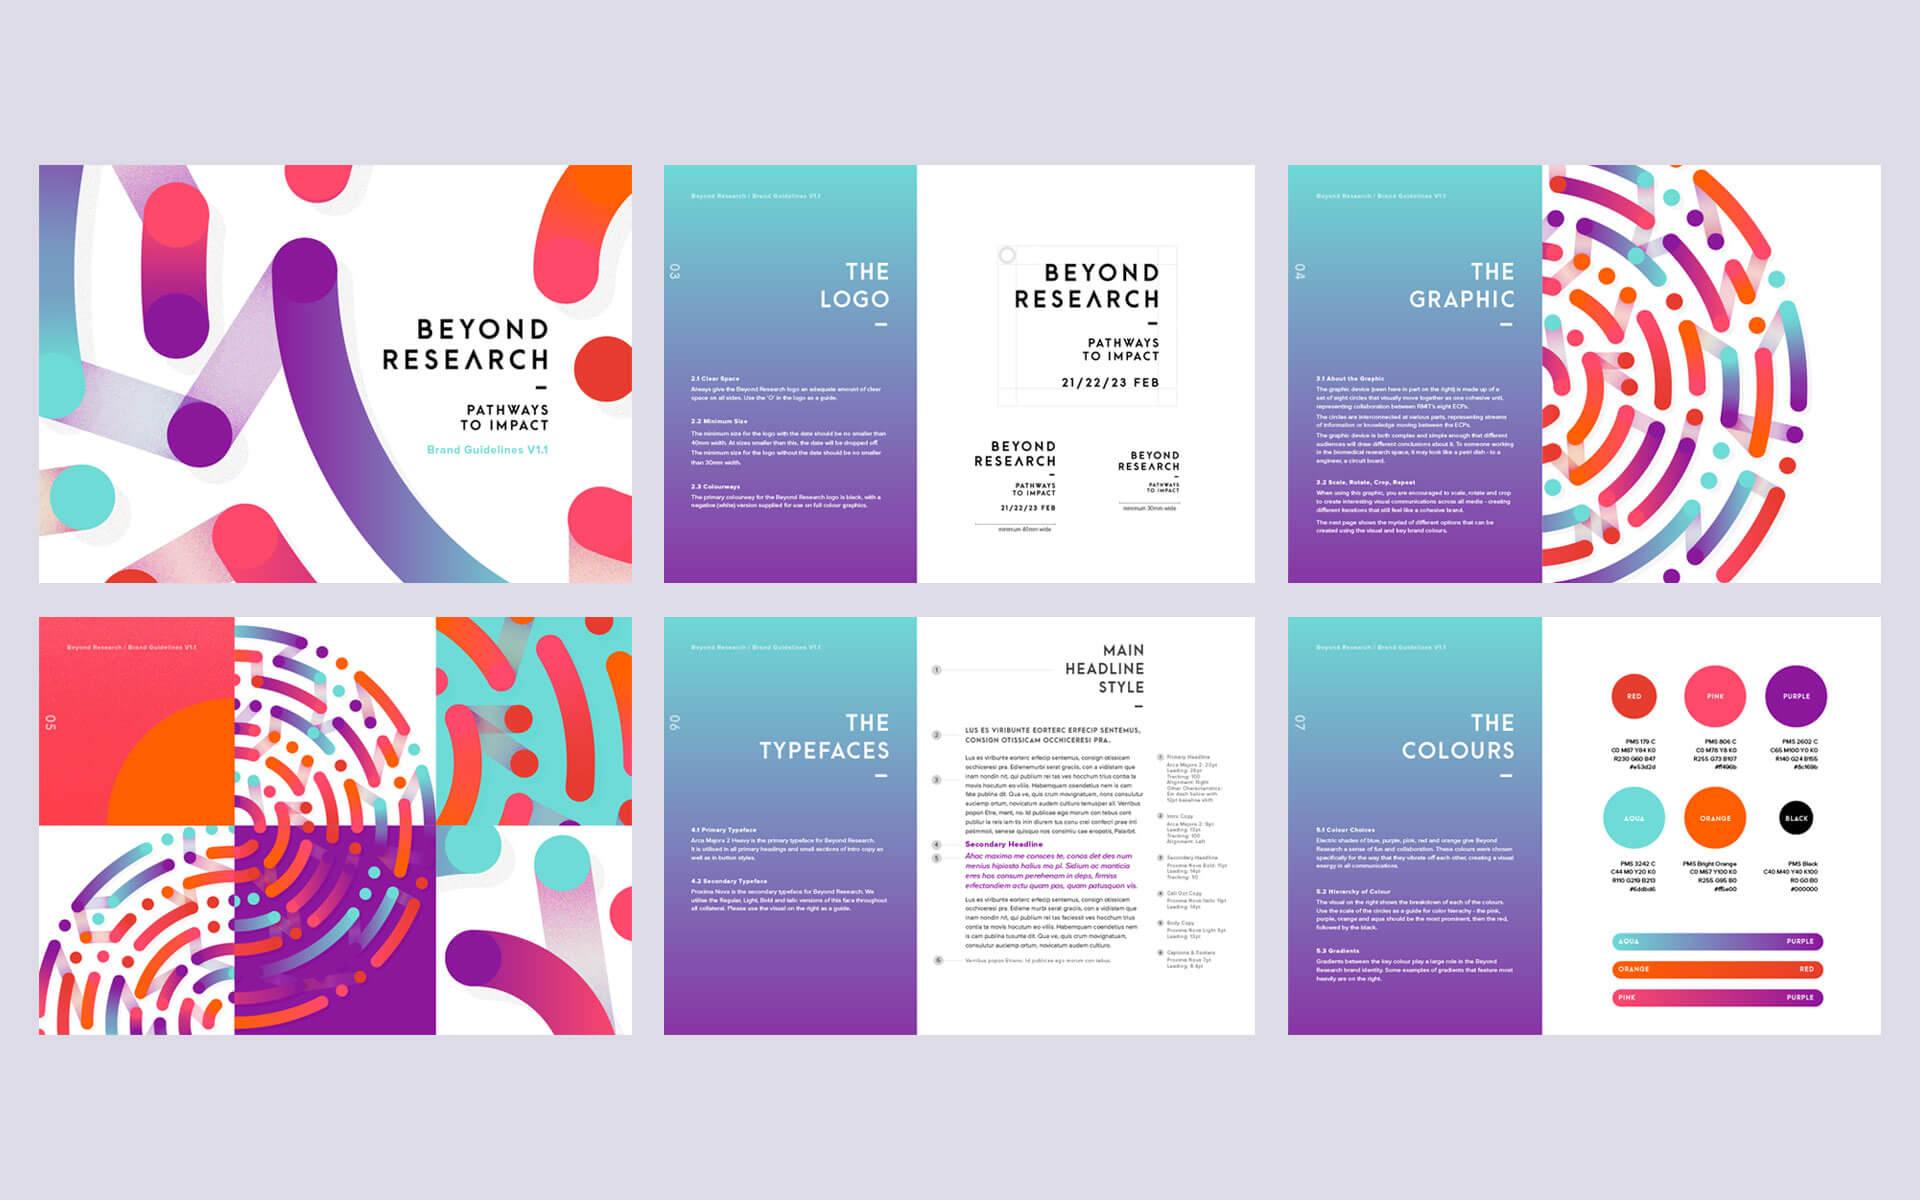 Beyond Research branding style guide